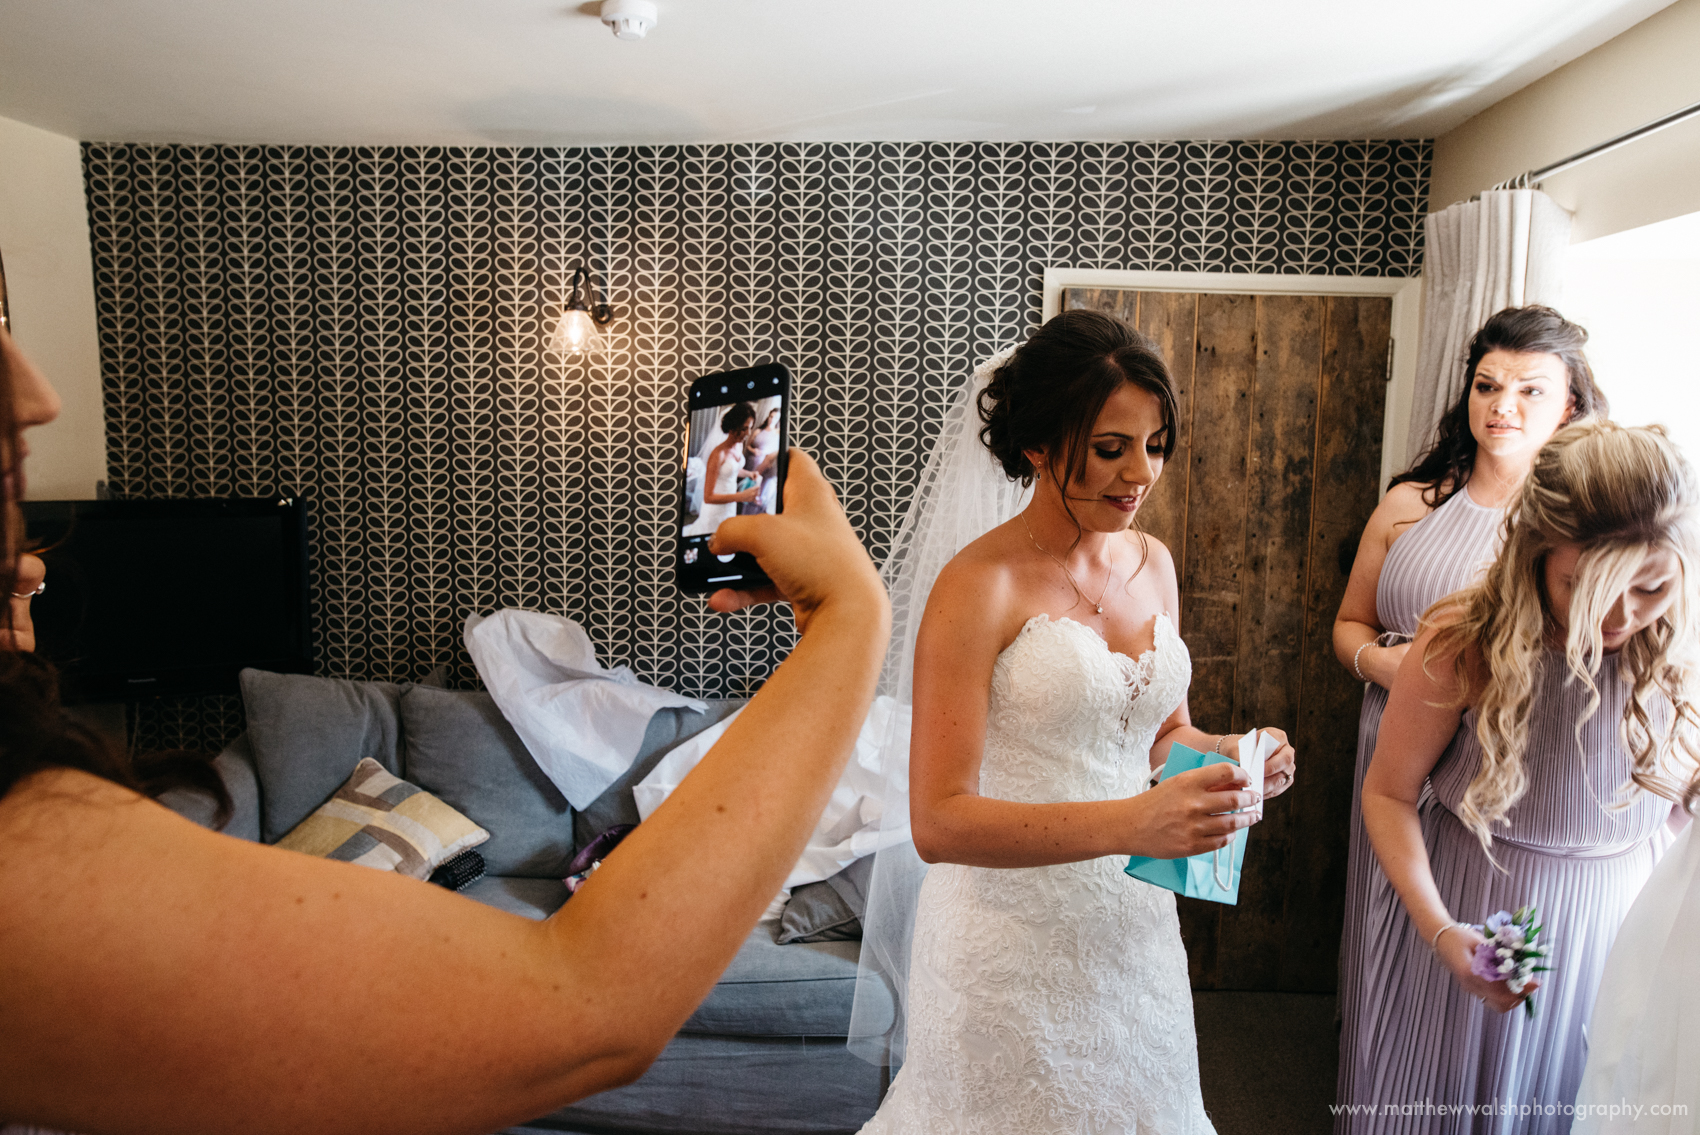 A bridesmaid takes a photo of the bride